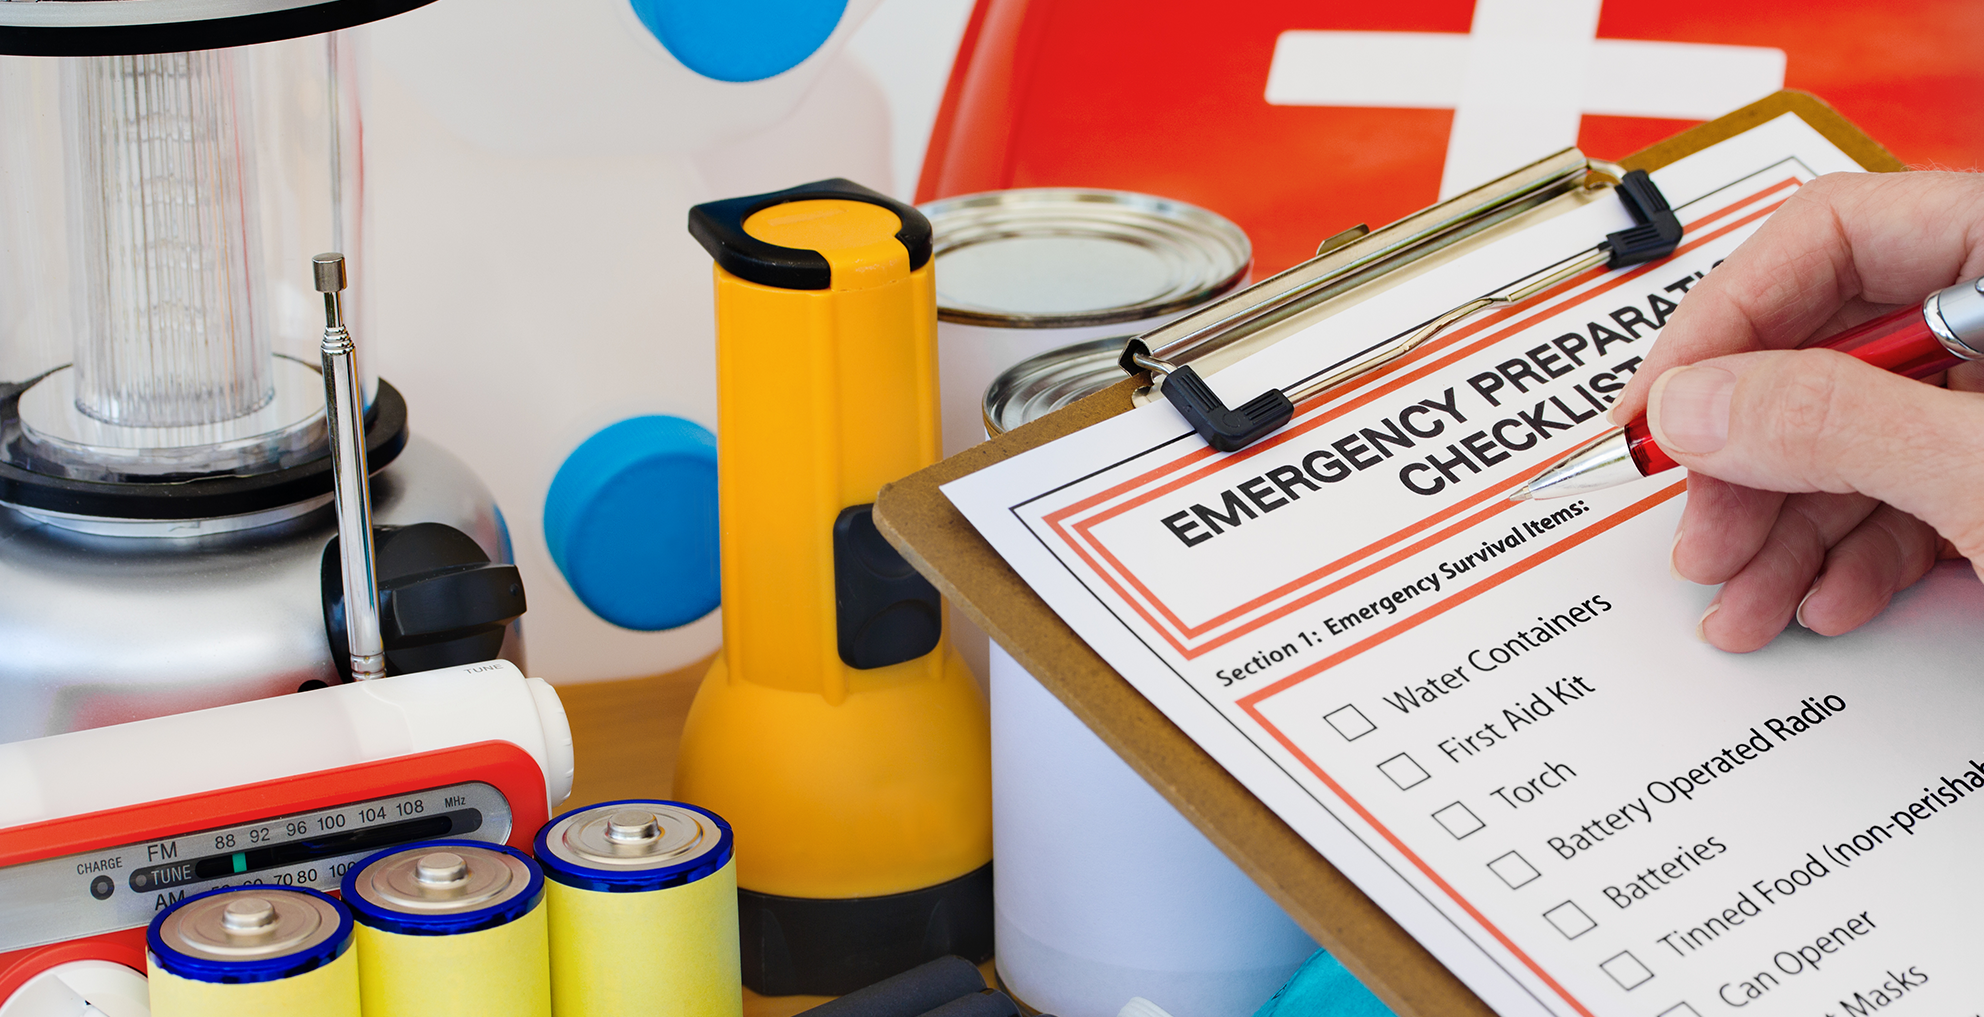 Preparing for emergencies with checklist and supplies